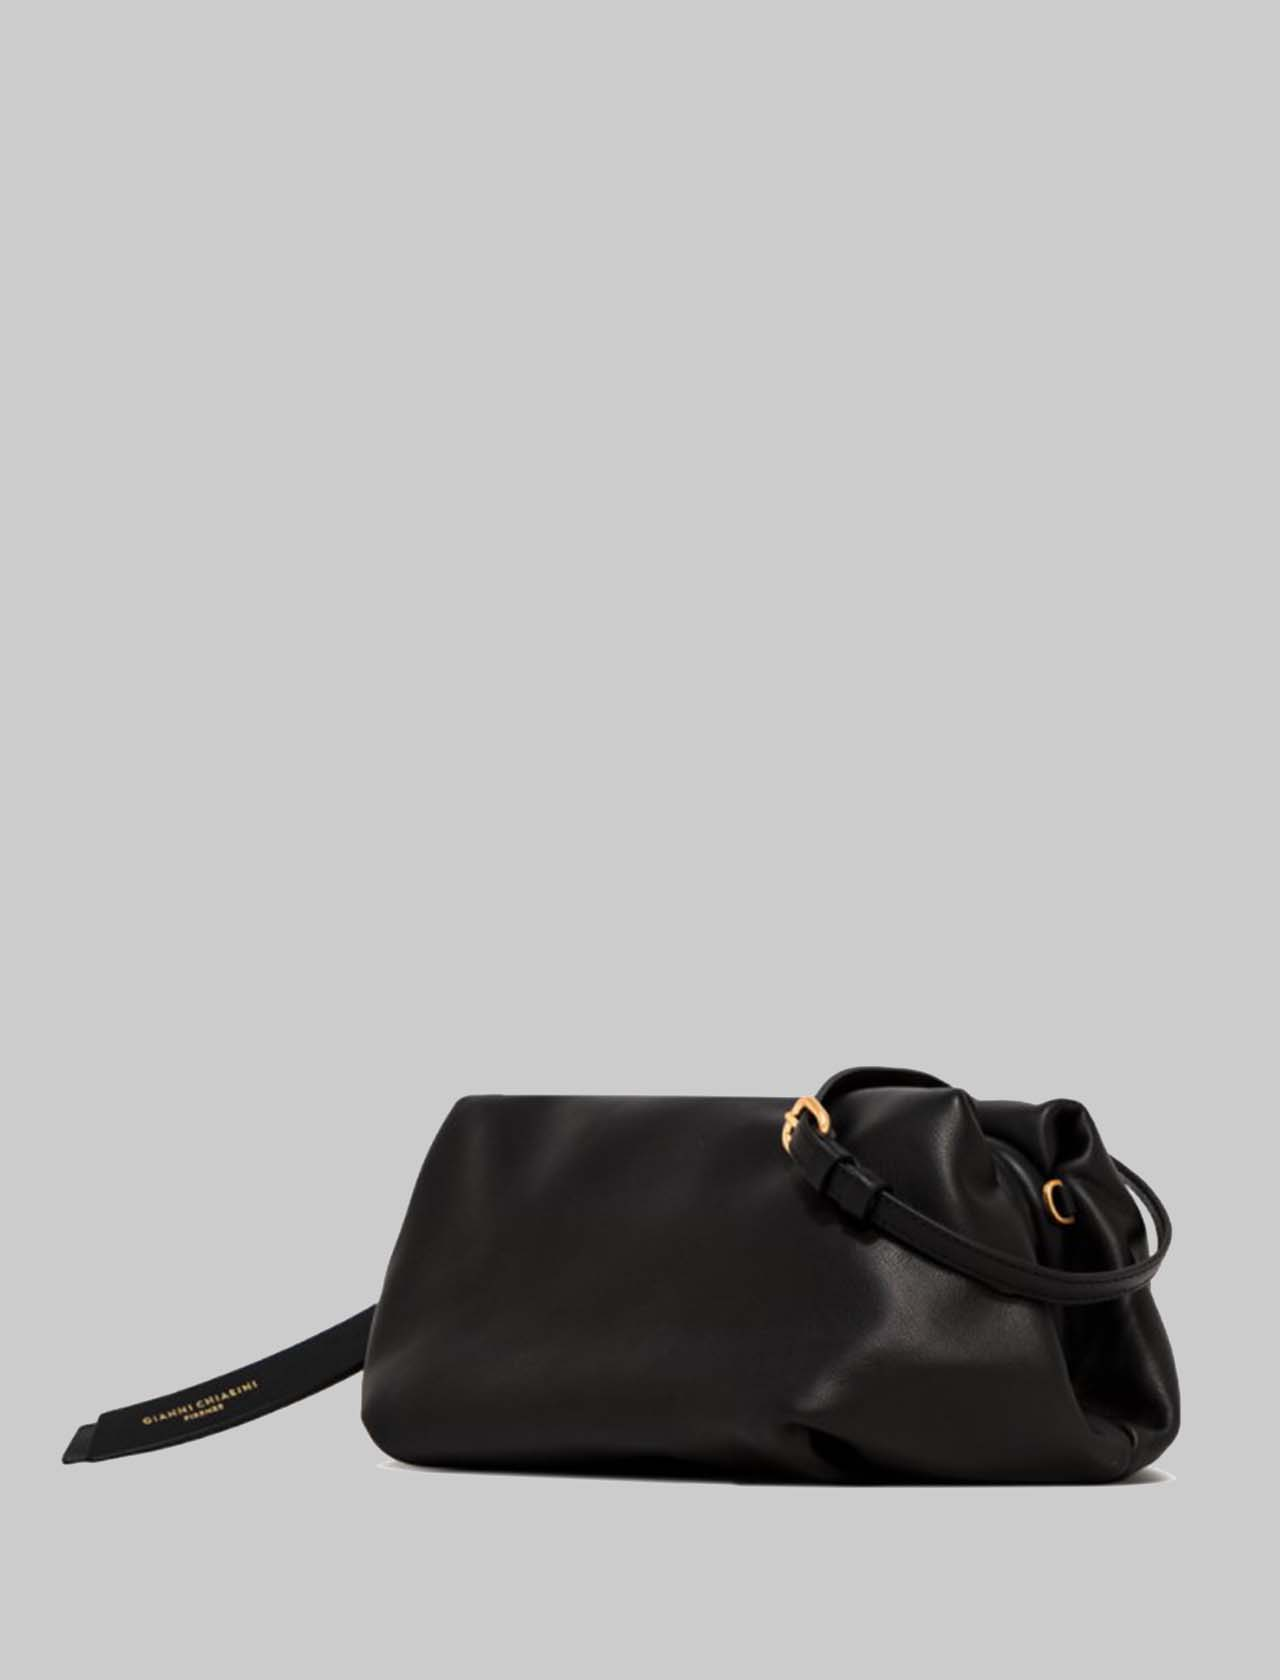 Colette Woman Bag In Black Leather With Gold Chain And Removable Leather Shoulder Strap Gianni Chiarini | Bags and backpacks | BS8405001